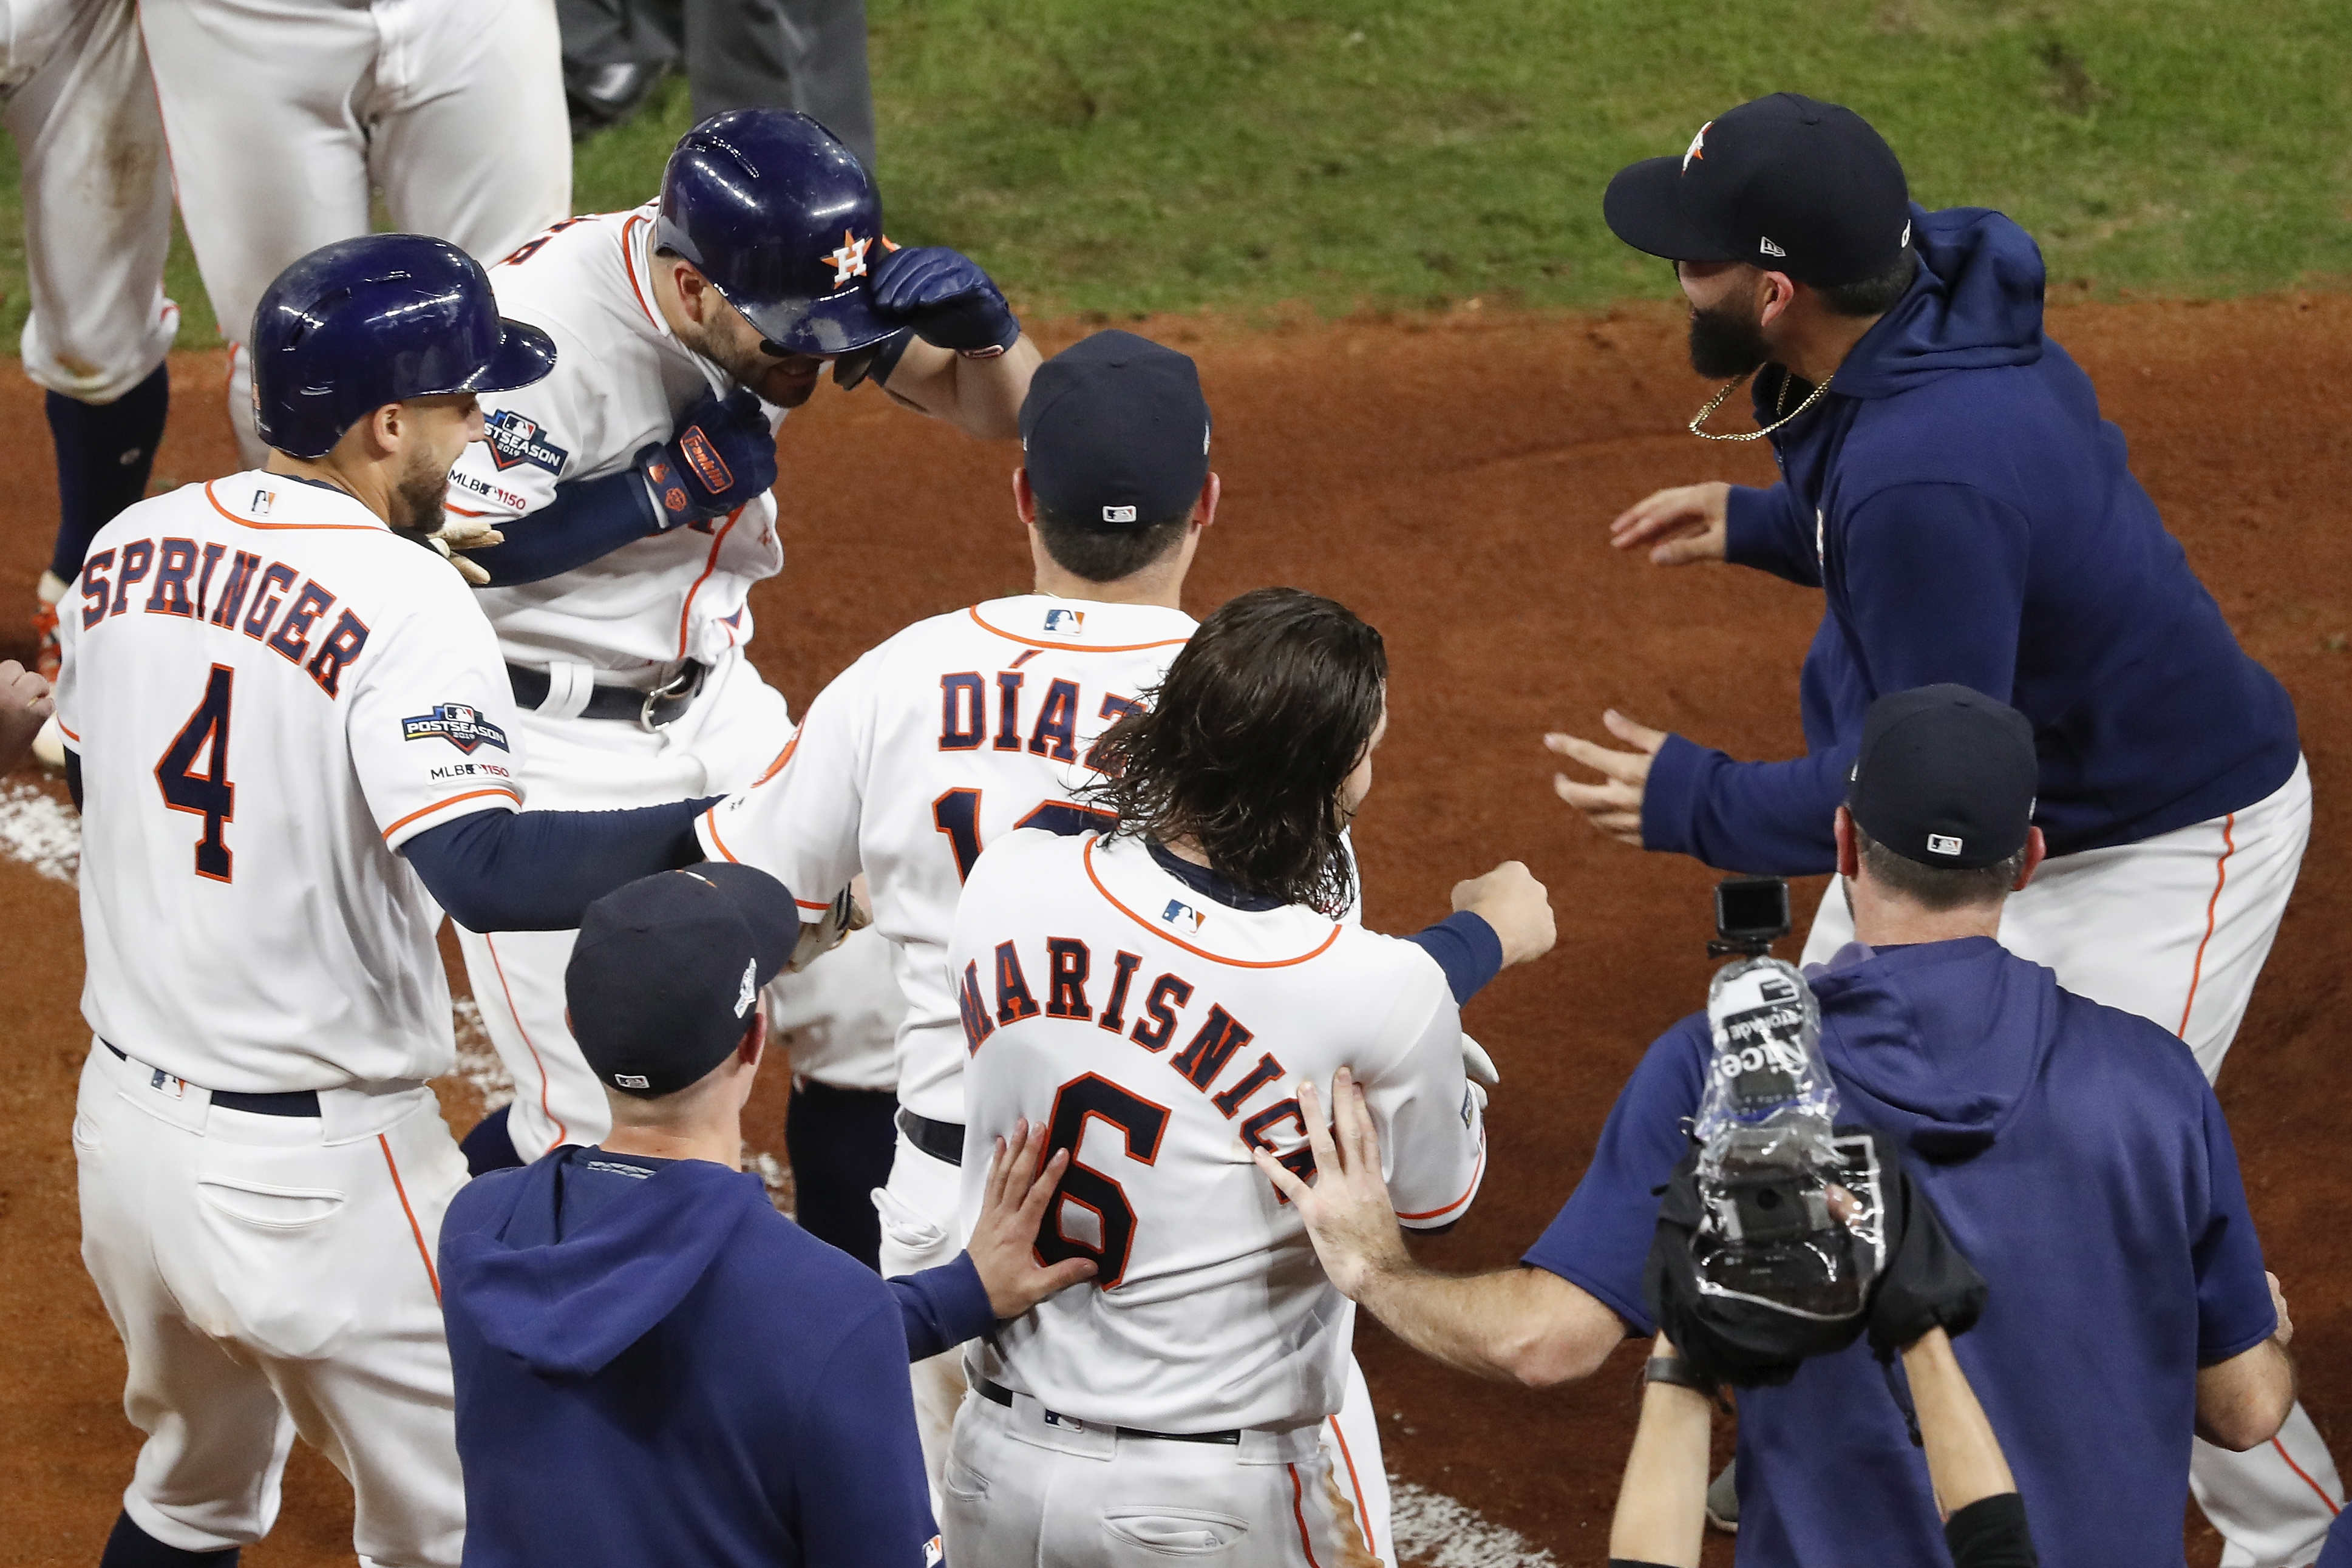 The Astros cheating scandal is getting messier and more amazing